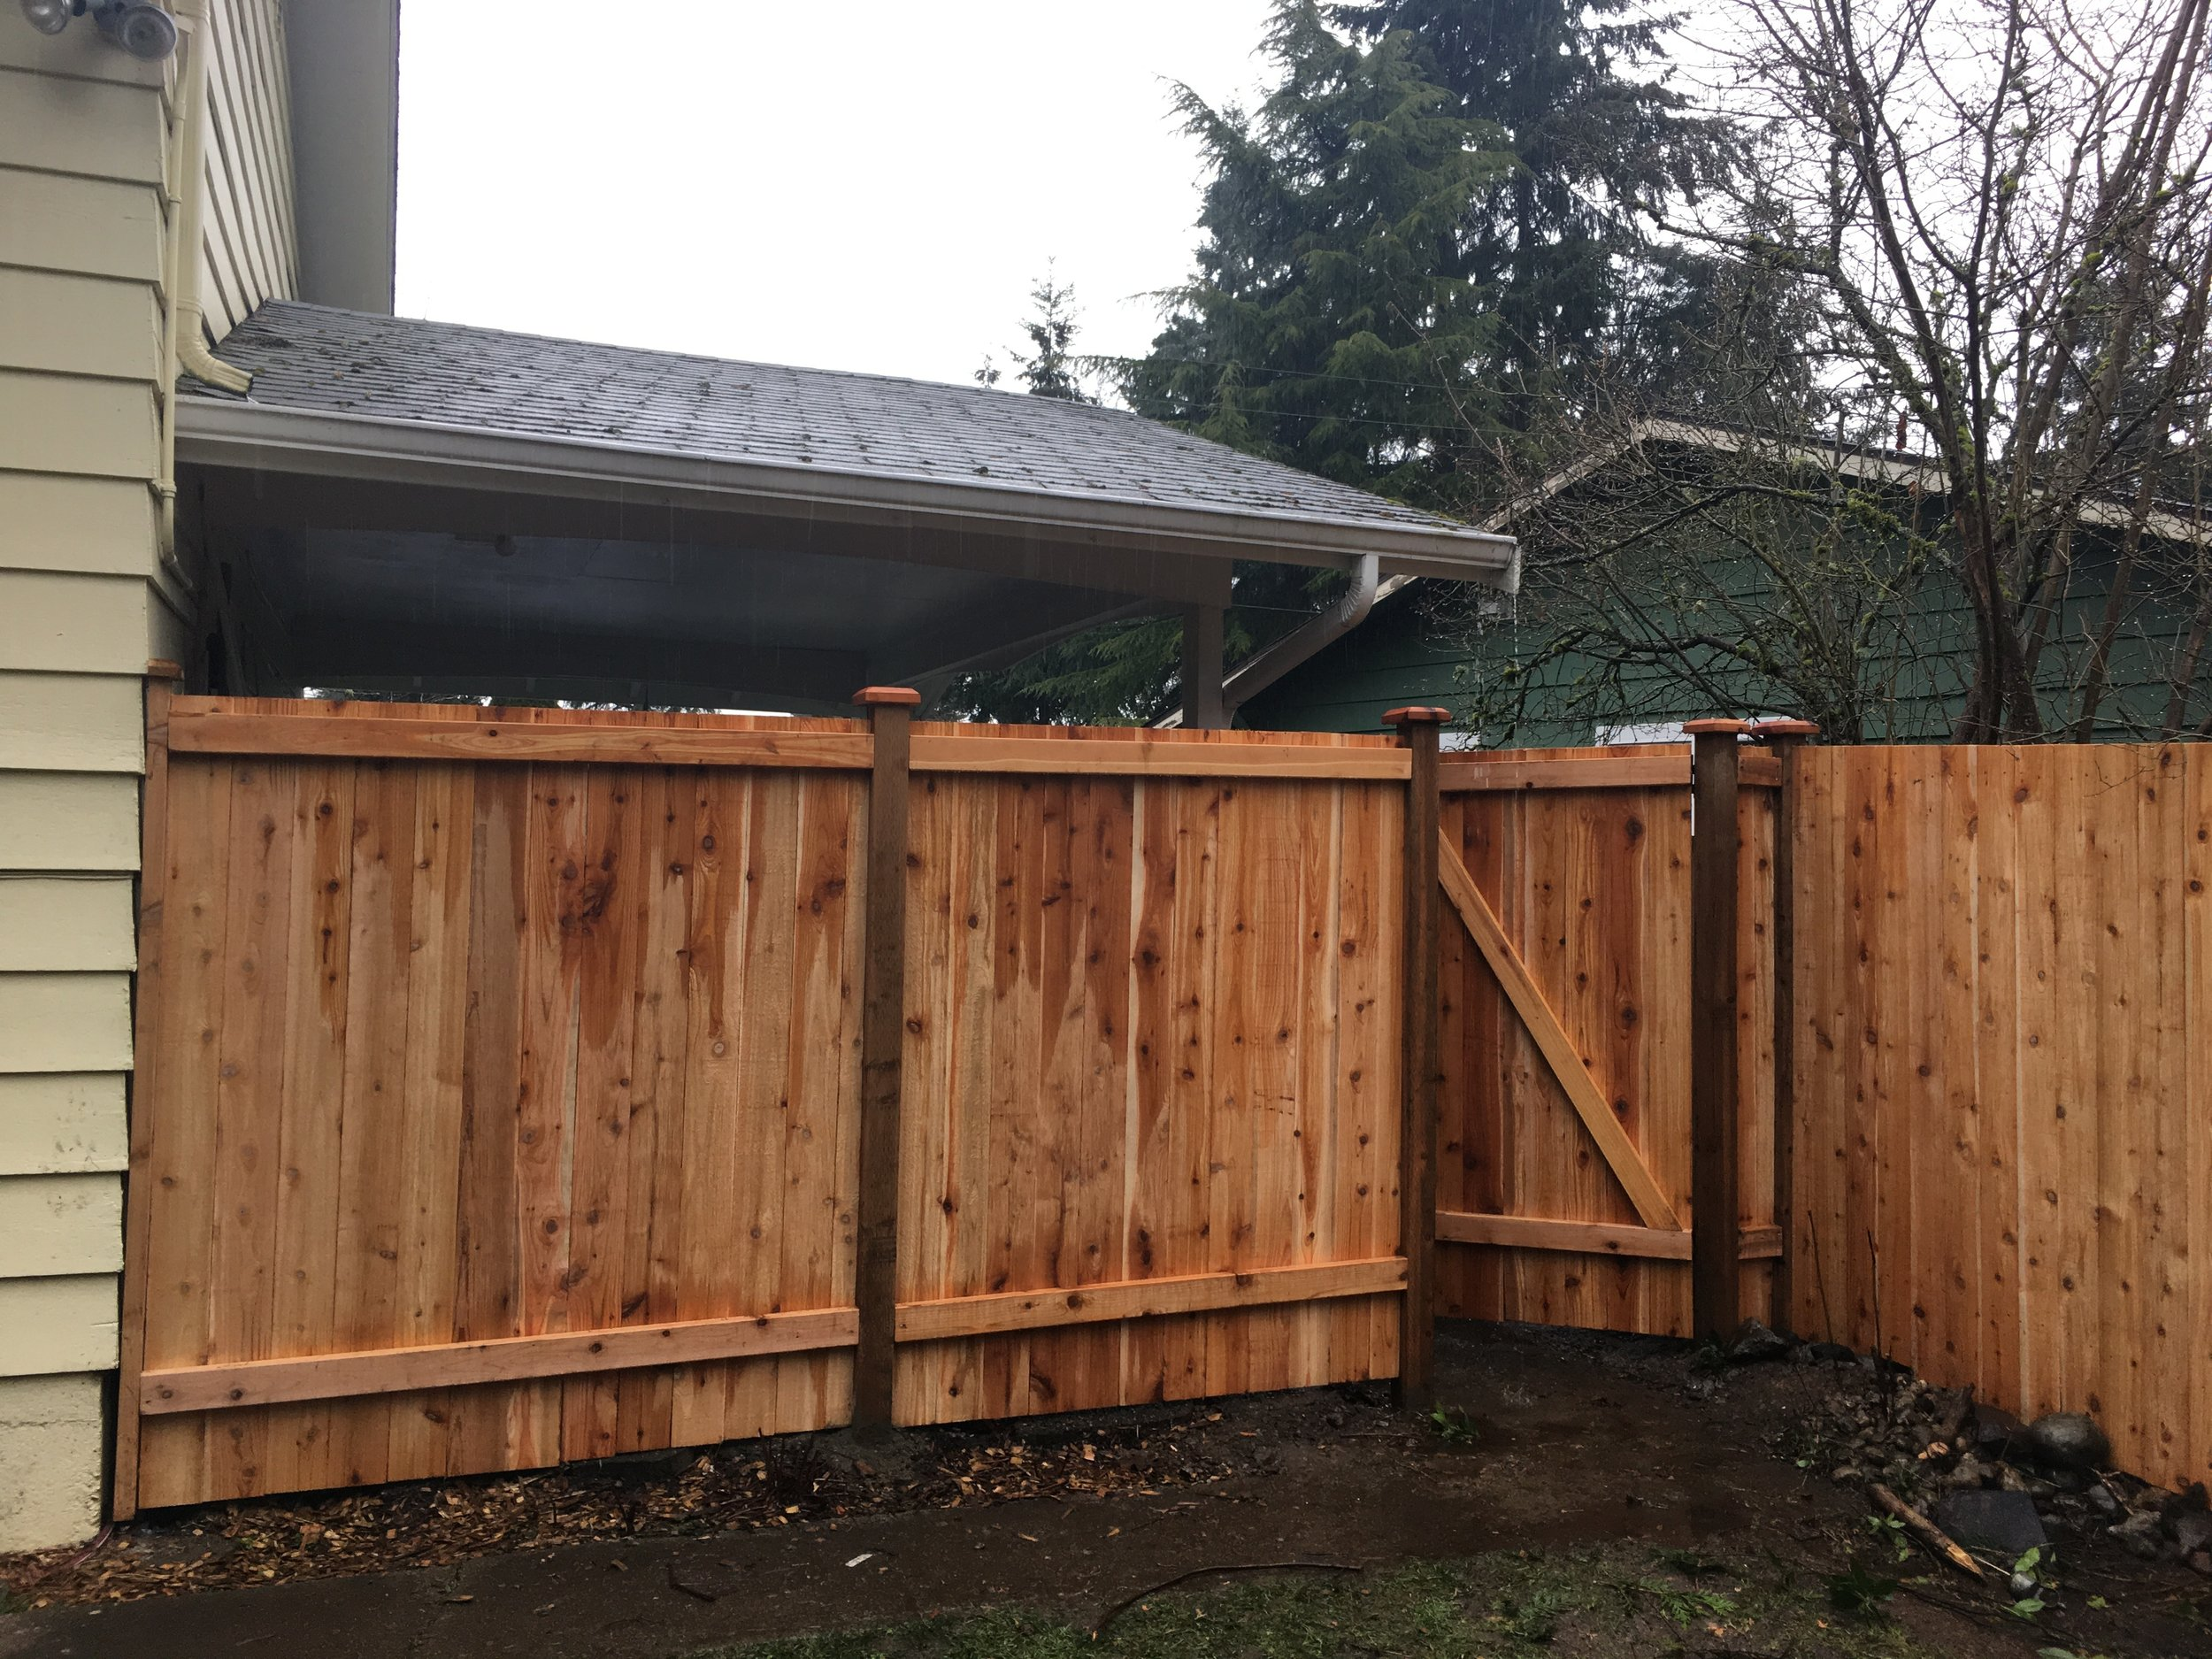 Removed chain link fence and replaced with new cedar fencing